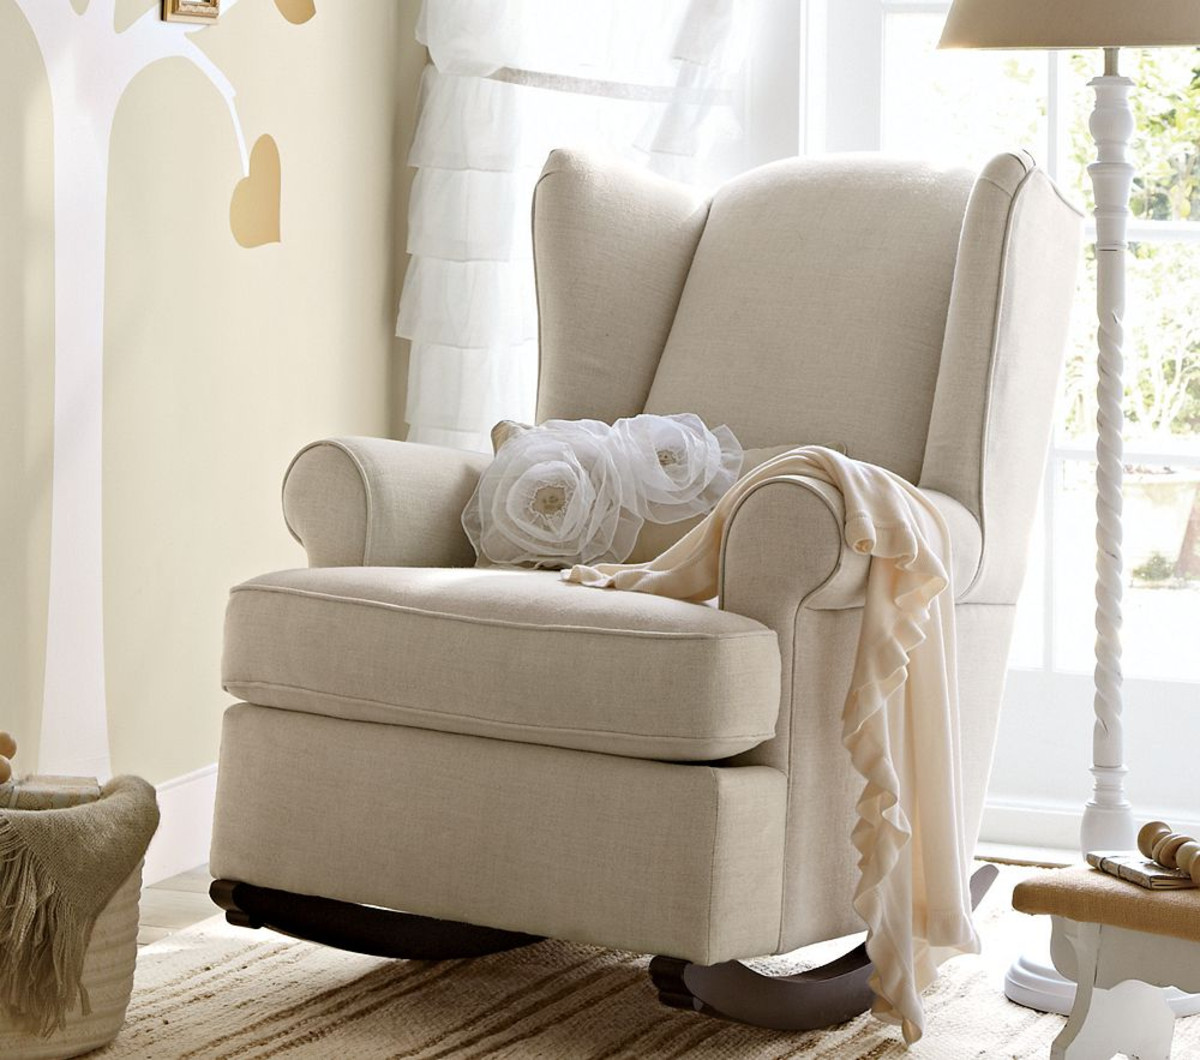 Toddler Upholstered Rocking Chair Kids Upholstered Rocker Chair Bangkokfoodietour